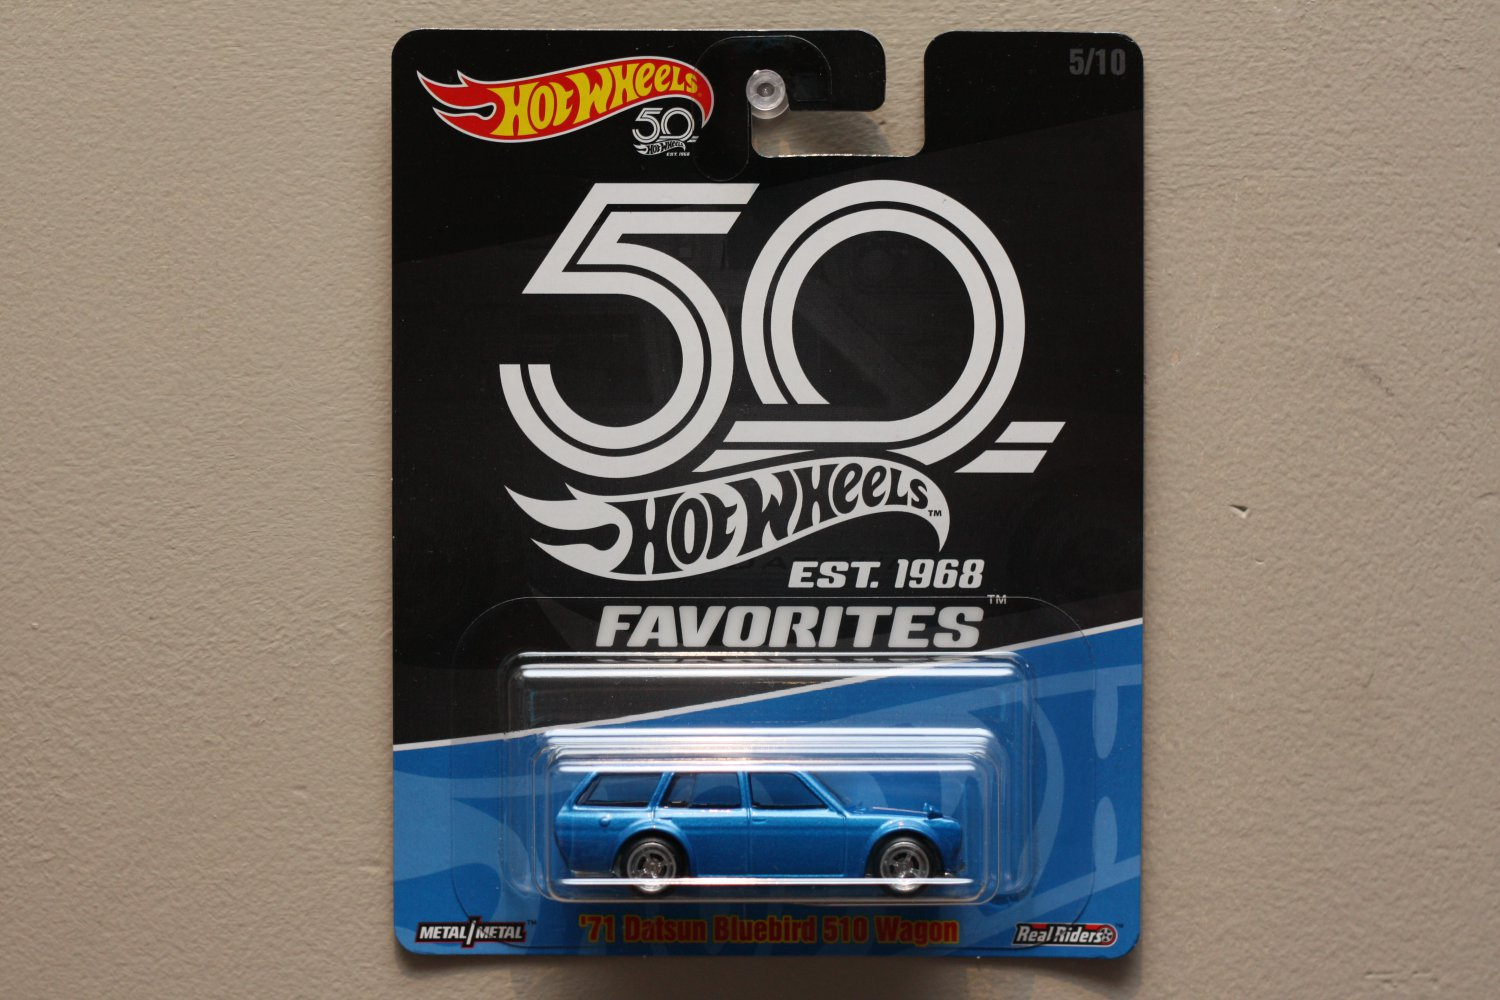 [TAMPO ERROR] Hot Wheels 2018 50th Anniversary Favorites Series '71 Datsun Bluebird 510 Wagon